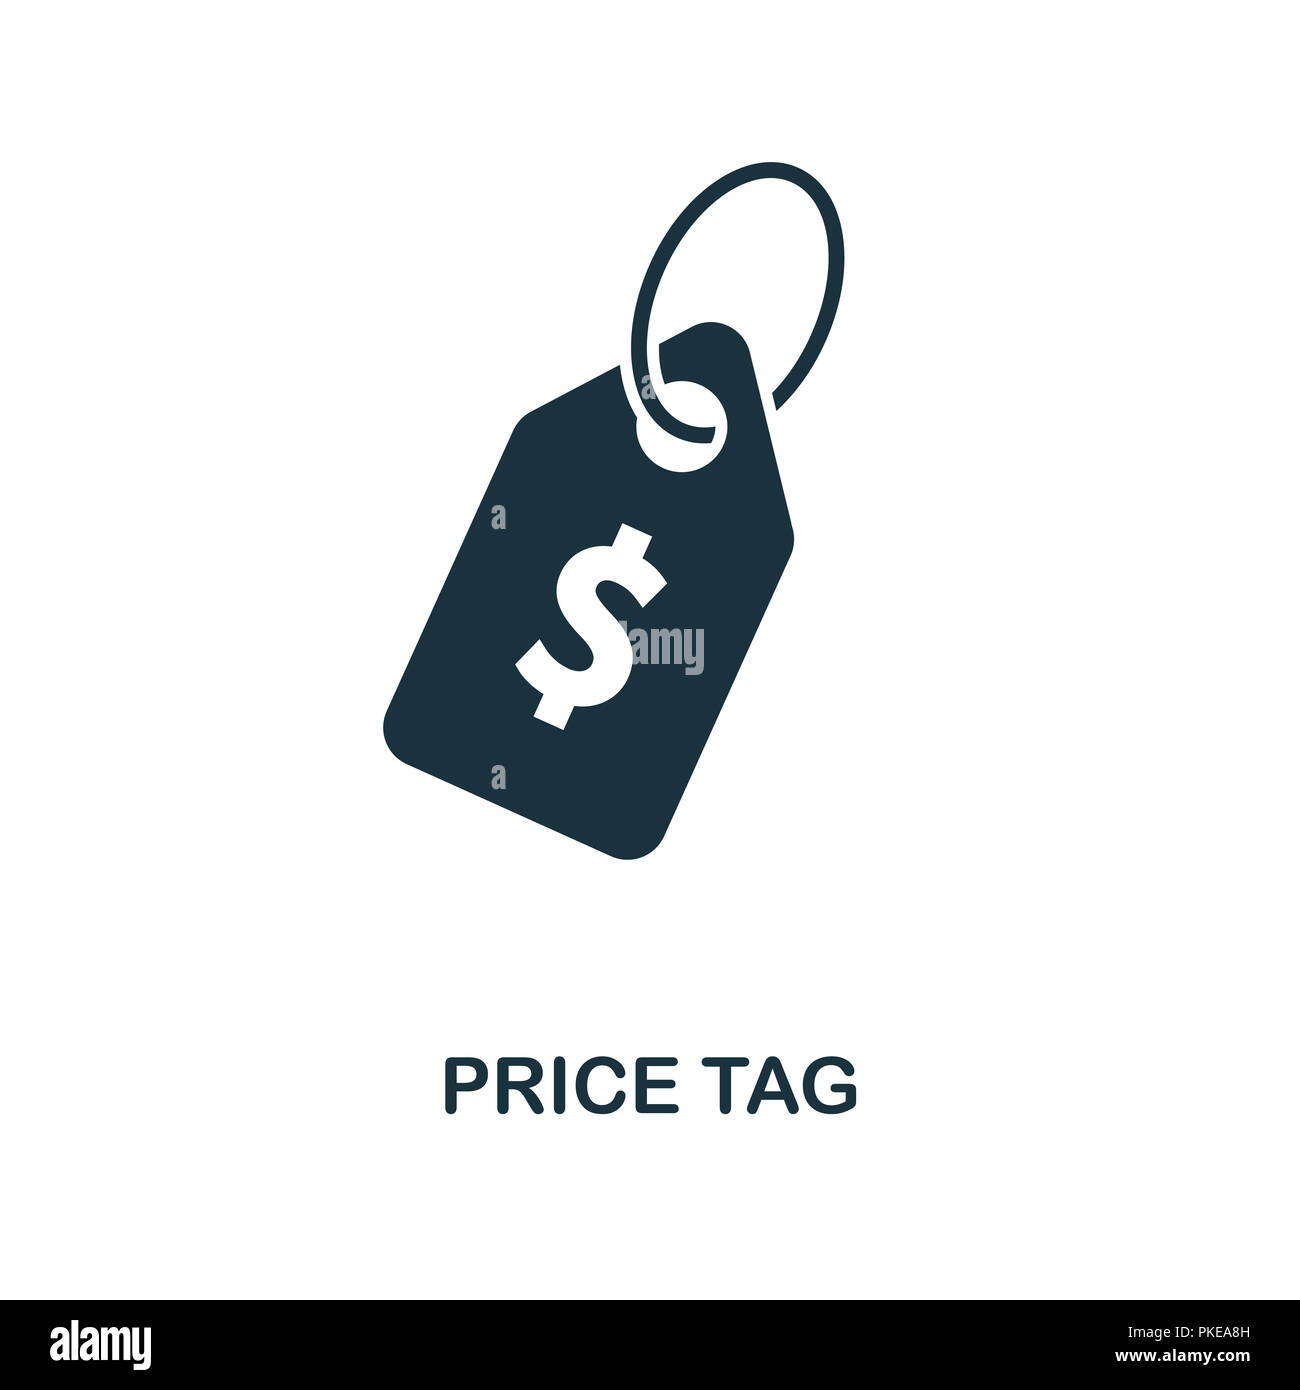 Price Tag Icon Monochrome Style Design From E Commerce Collection